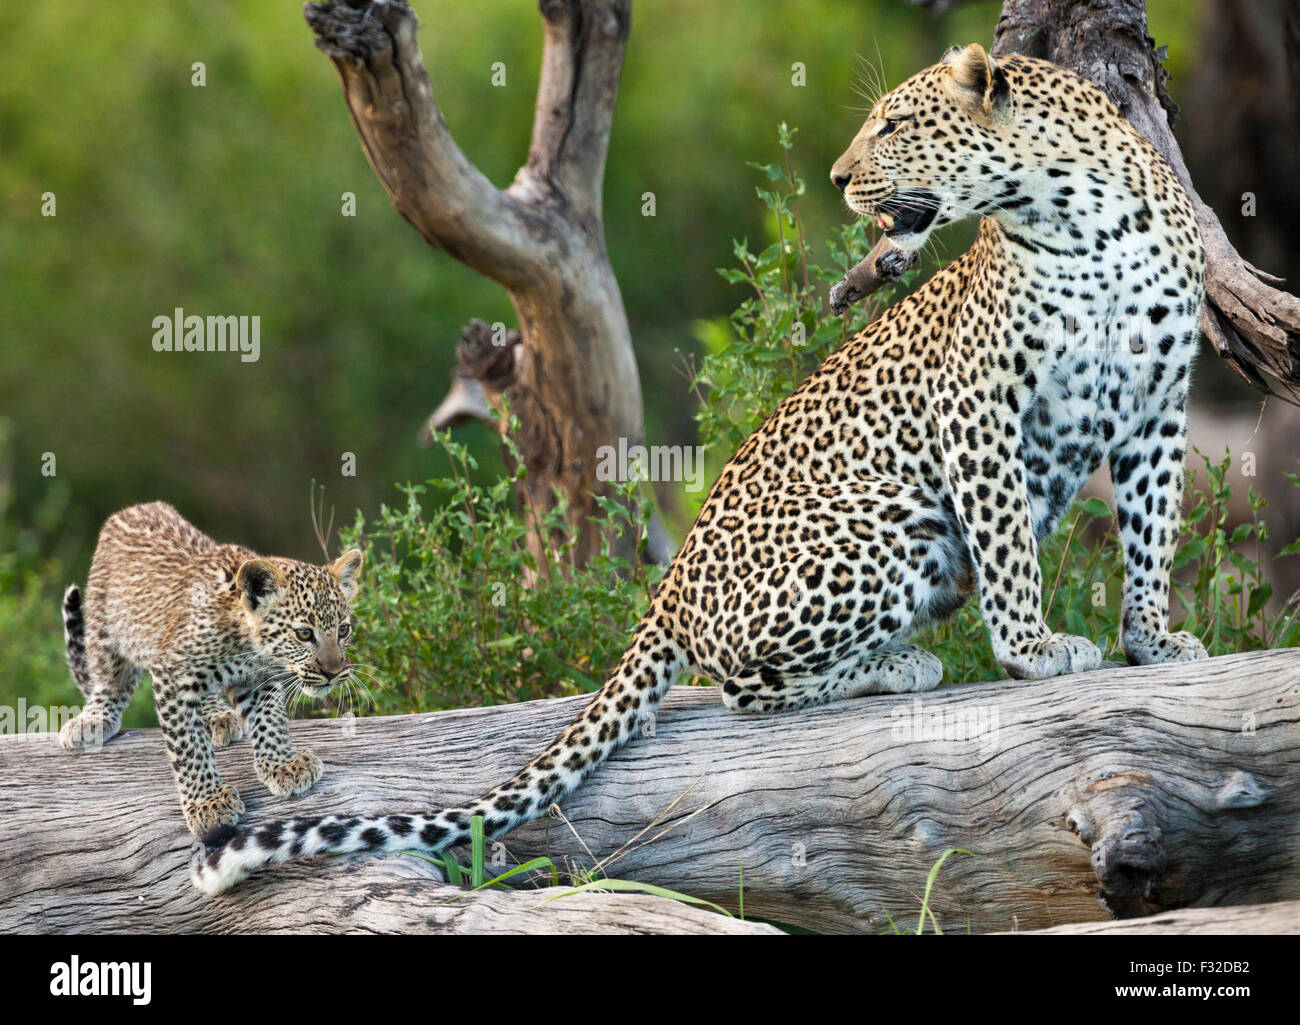 Mother and baby leopard perched on weathered log in Serengeti National Park, Tanzania - Stock Image